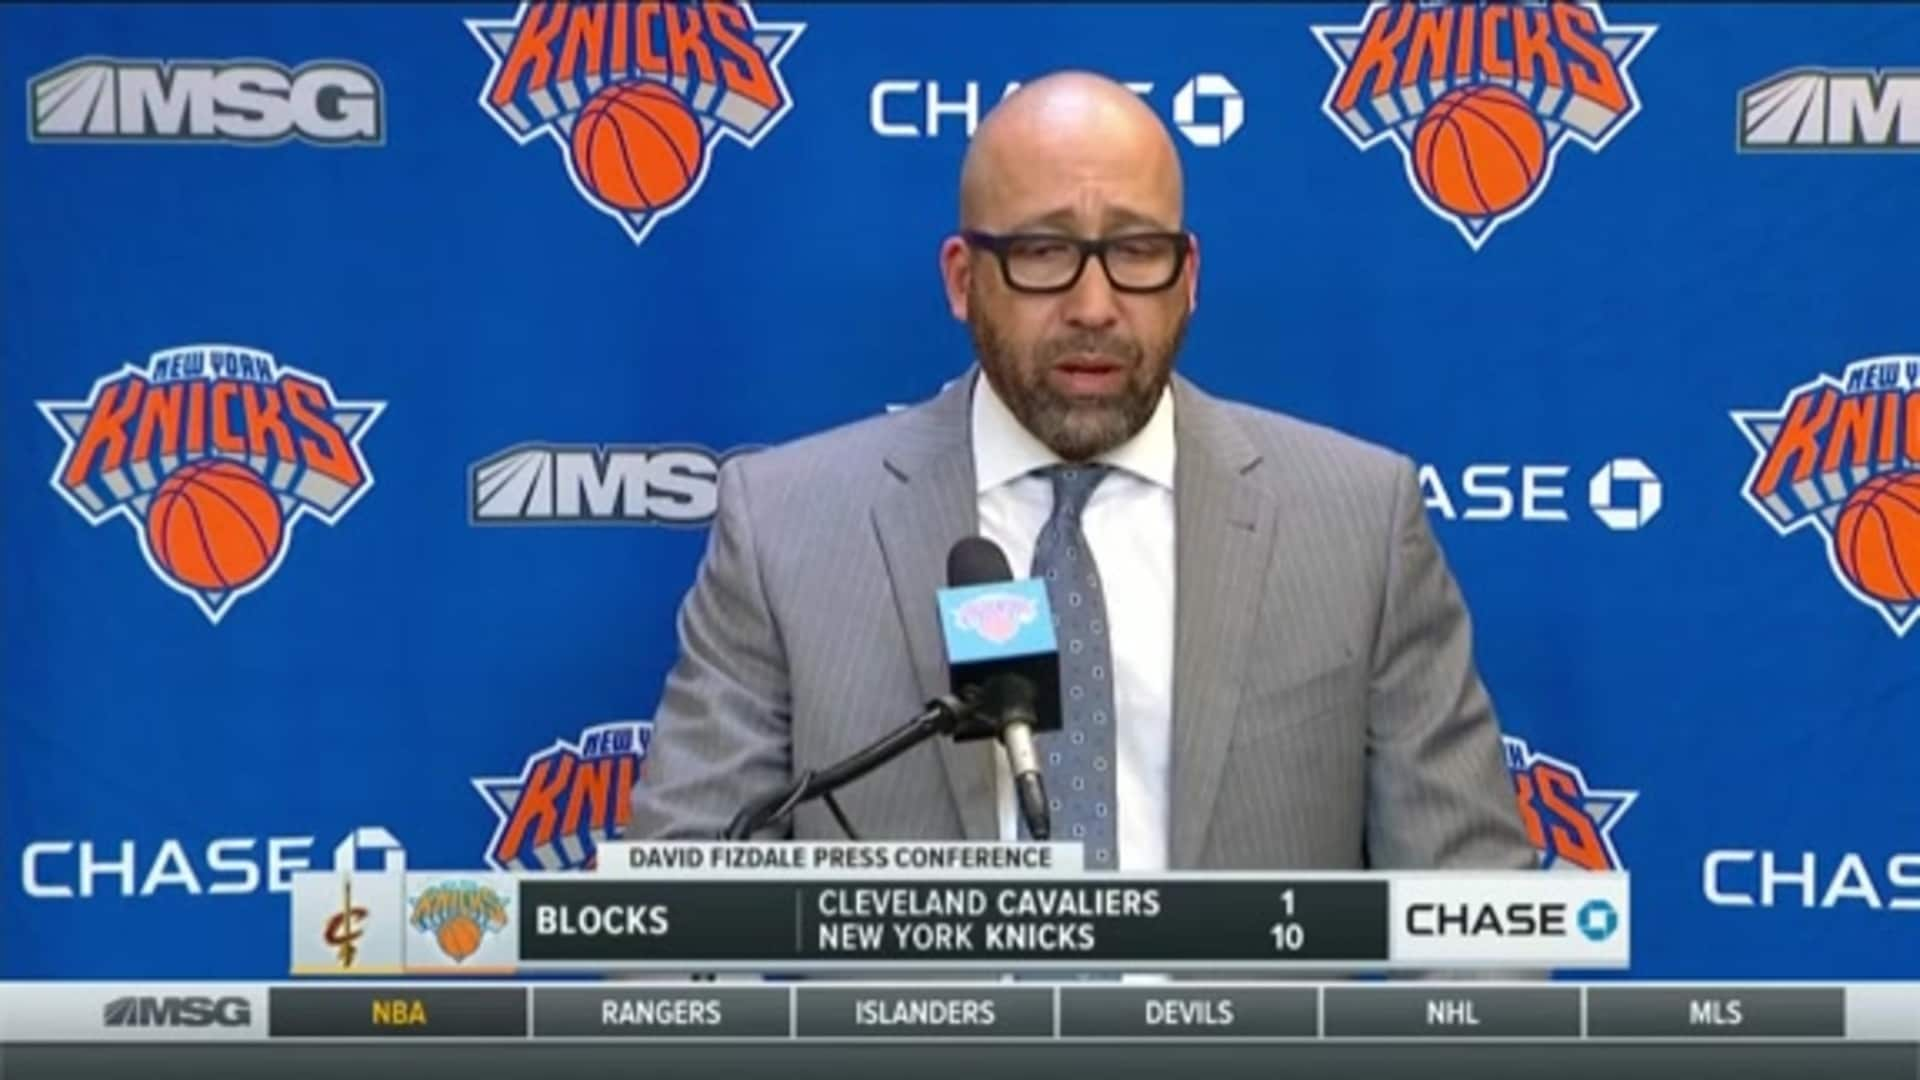 Knicks Postgame: Coach Fizdale | November 18 vs. Cavaliers